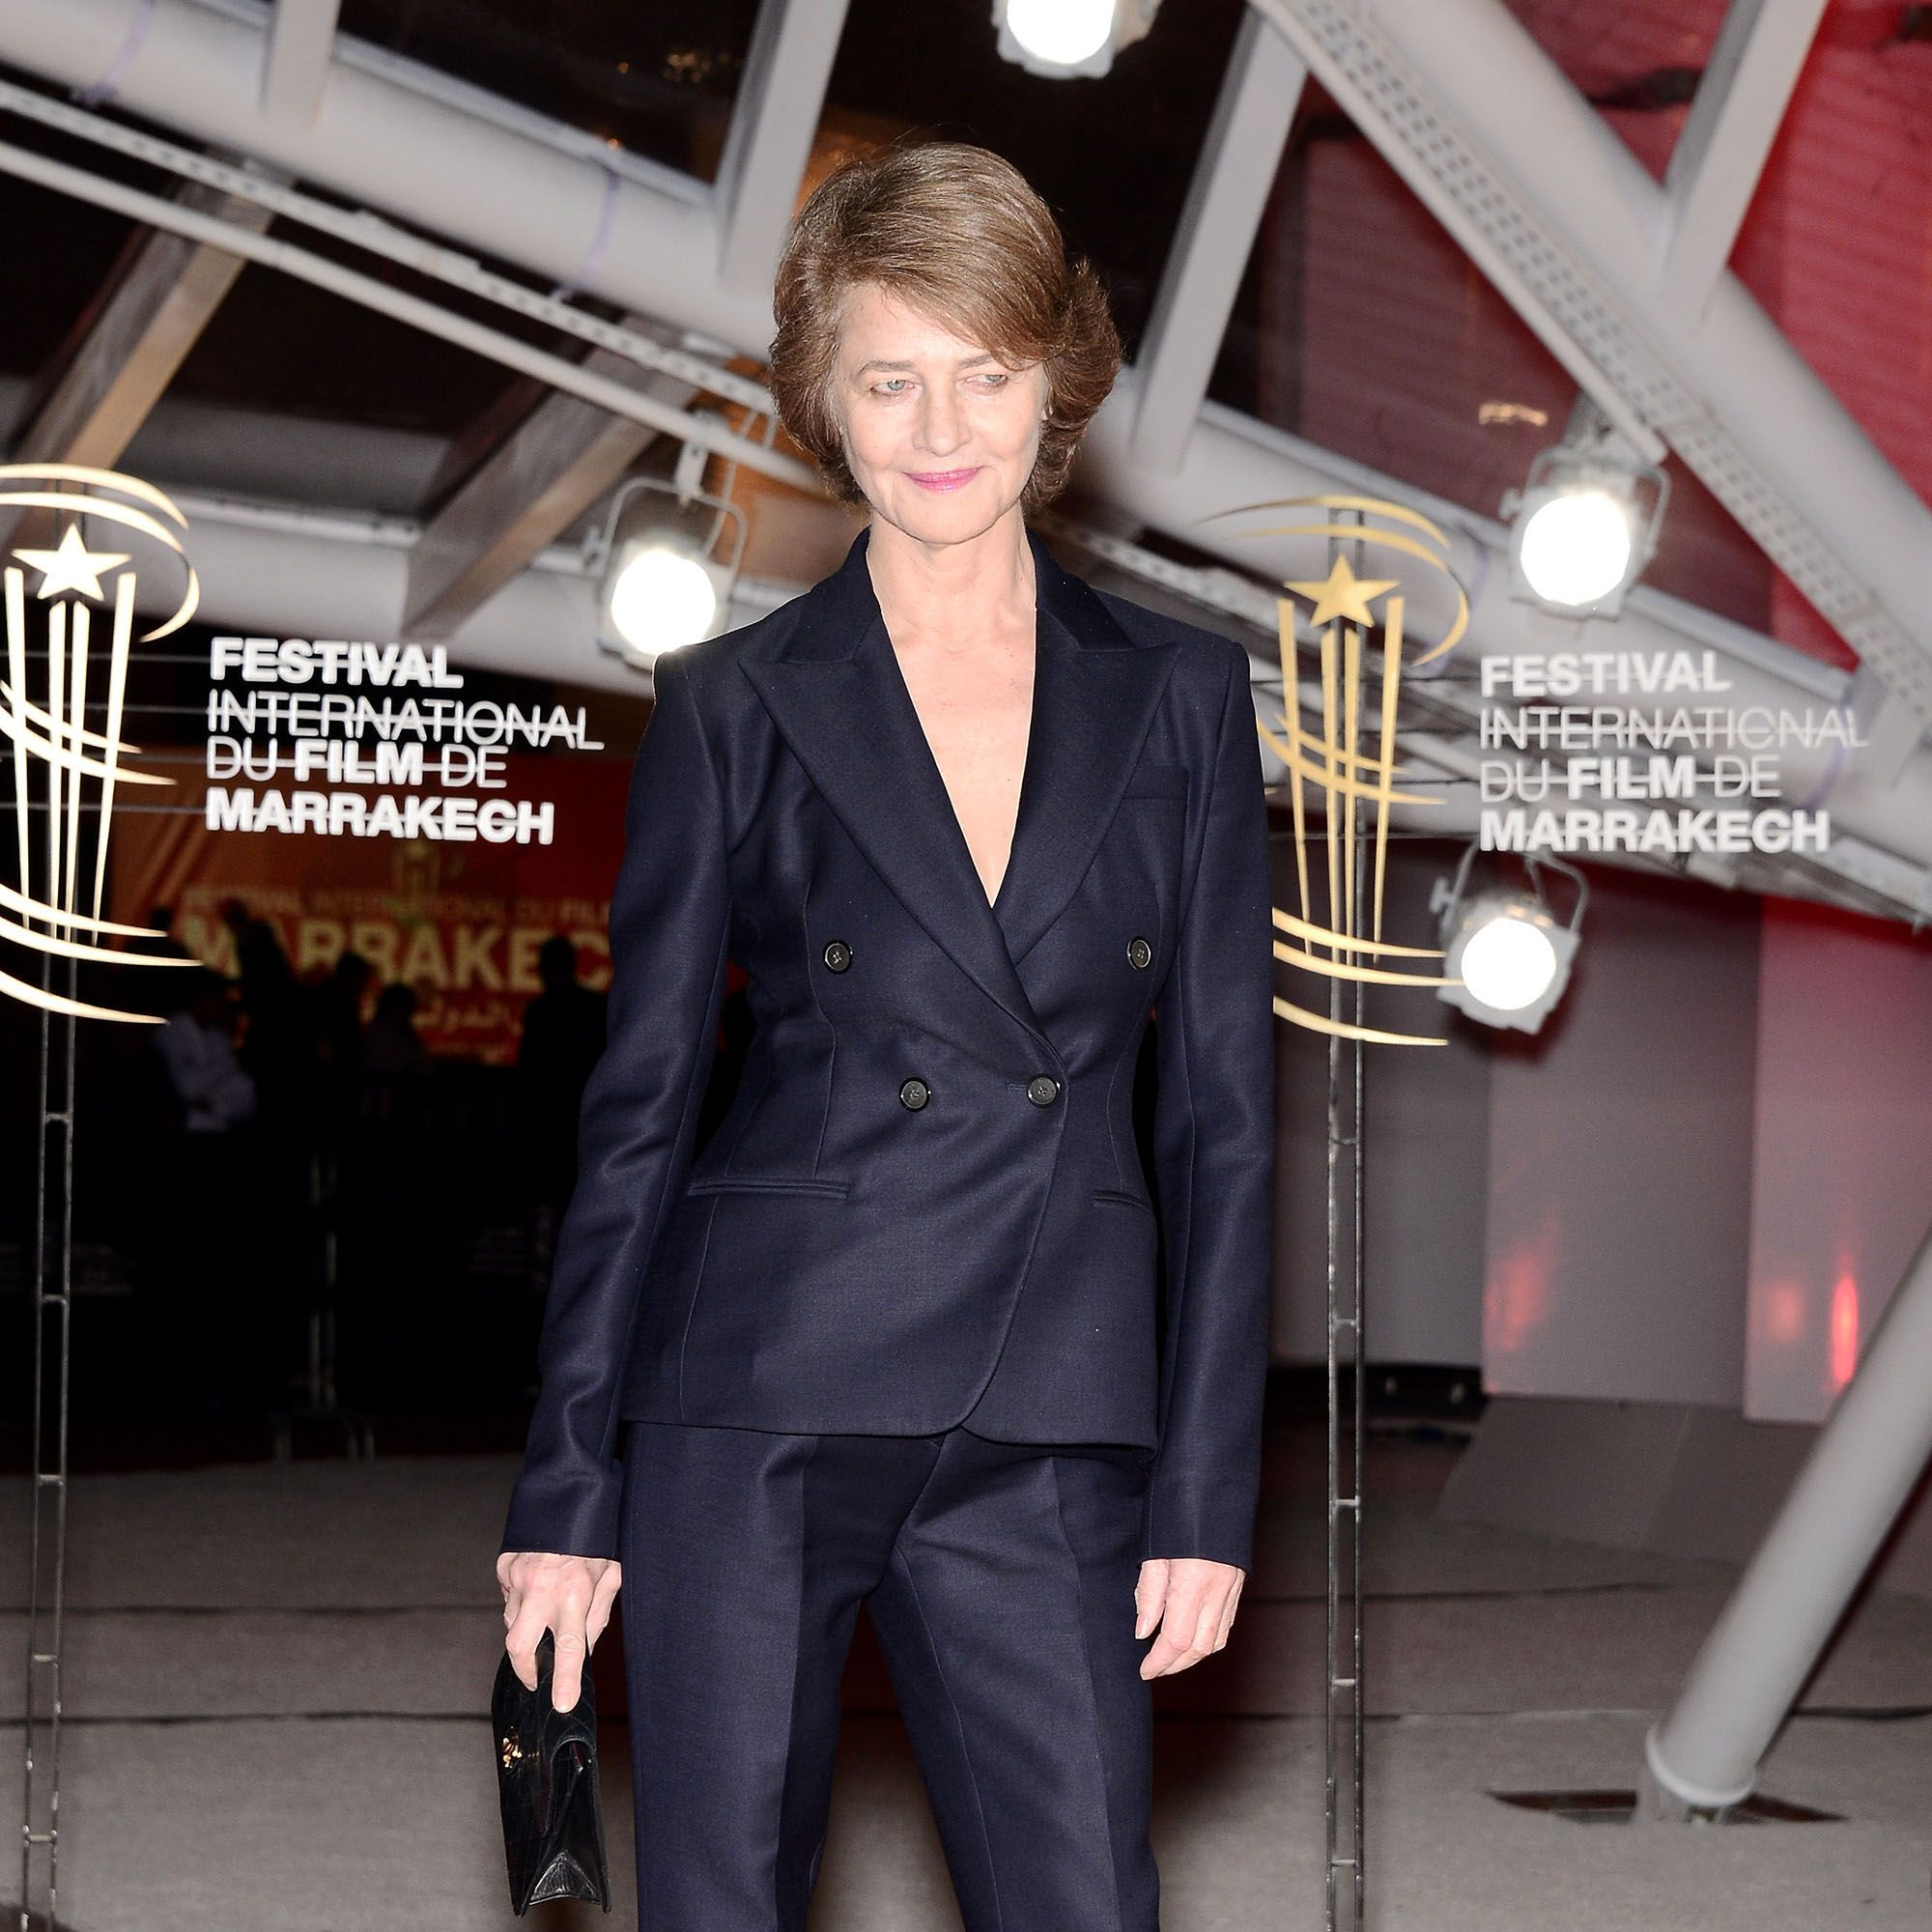 MARRAKECH, MOROCCO - DECEMBER 01:  Actress Charlotte Rampling attends the 'Like Father, Like Son' premiere during the 13th Marrakech International Film Festival on December 1, 2013 in Marrakech, Morocco.  (Photo by Dominique Charriau/GettyImages for Dior)